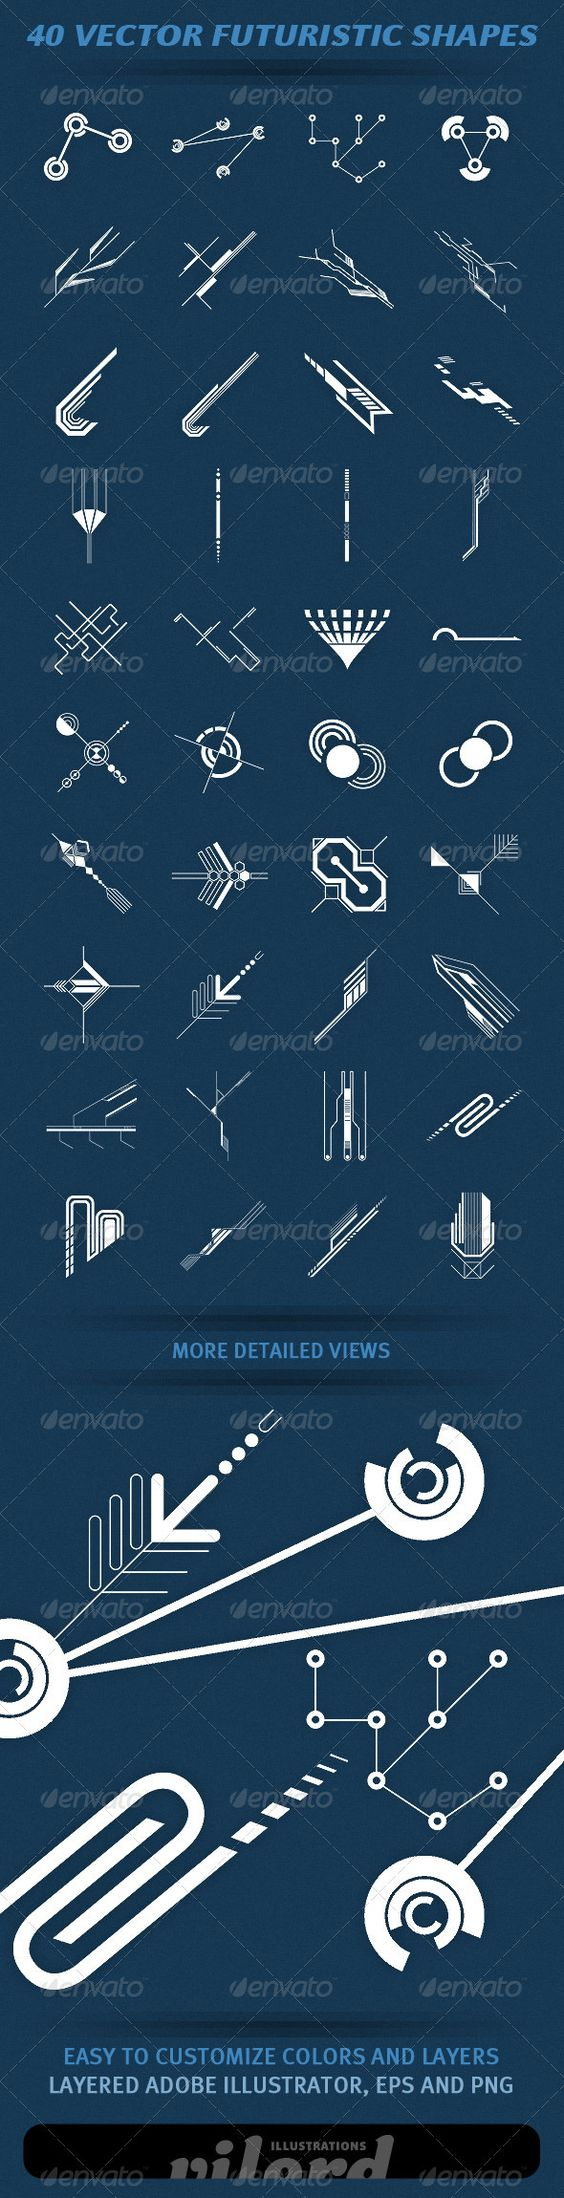 """40 Vector Futuristic Shapes  #GraphicRiver         Set of 40 vector hi-tech futuristic shapes for your graphic designs. Great for print or web design! Enjoy    Adobe Illustrator is main file and """"fully editable"""". Also transparent PNG and EPS files in the package.     Created: 4April12 GraphicsFilesIncluded: TransparentPNG #VectorEPS #AIIllustrator Layered: Yes MinimumAdobeCSVersion: CS Tags: decorative #future #futuristic #geometric #hi-tech #ornaments #schemes #shapes #technology #vector"""